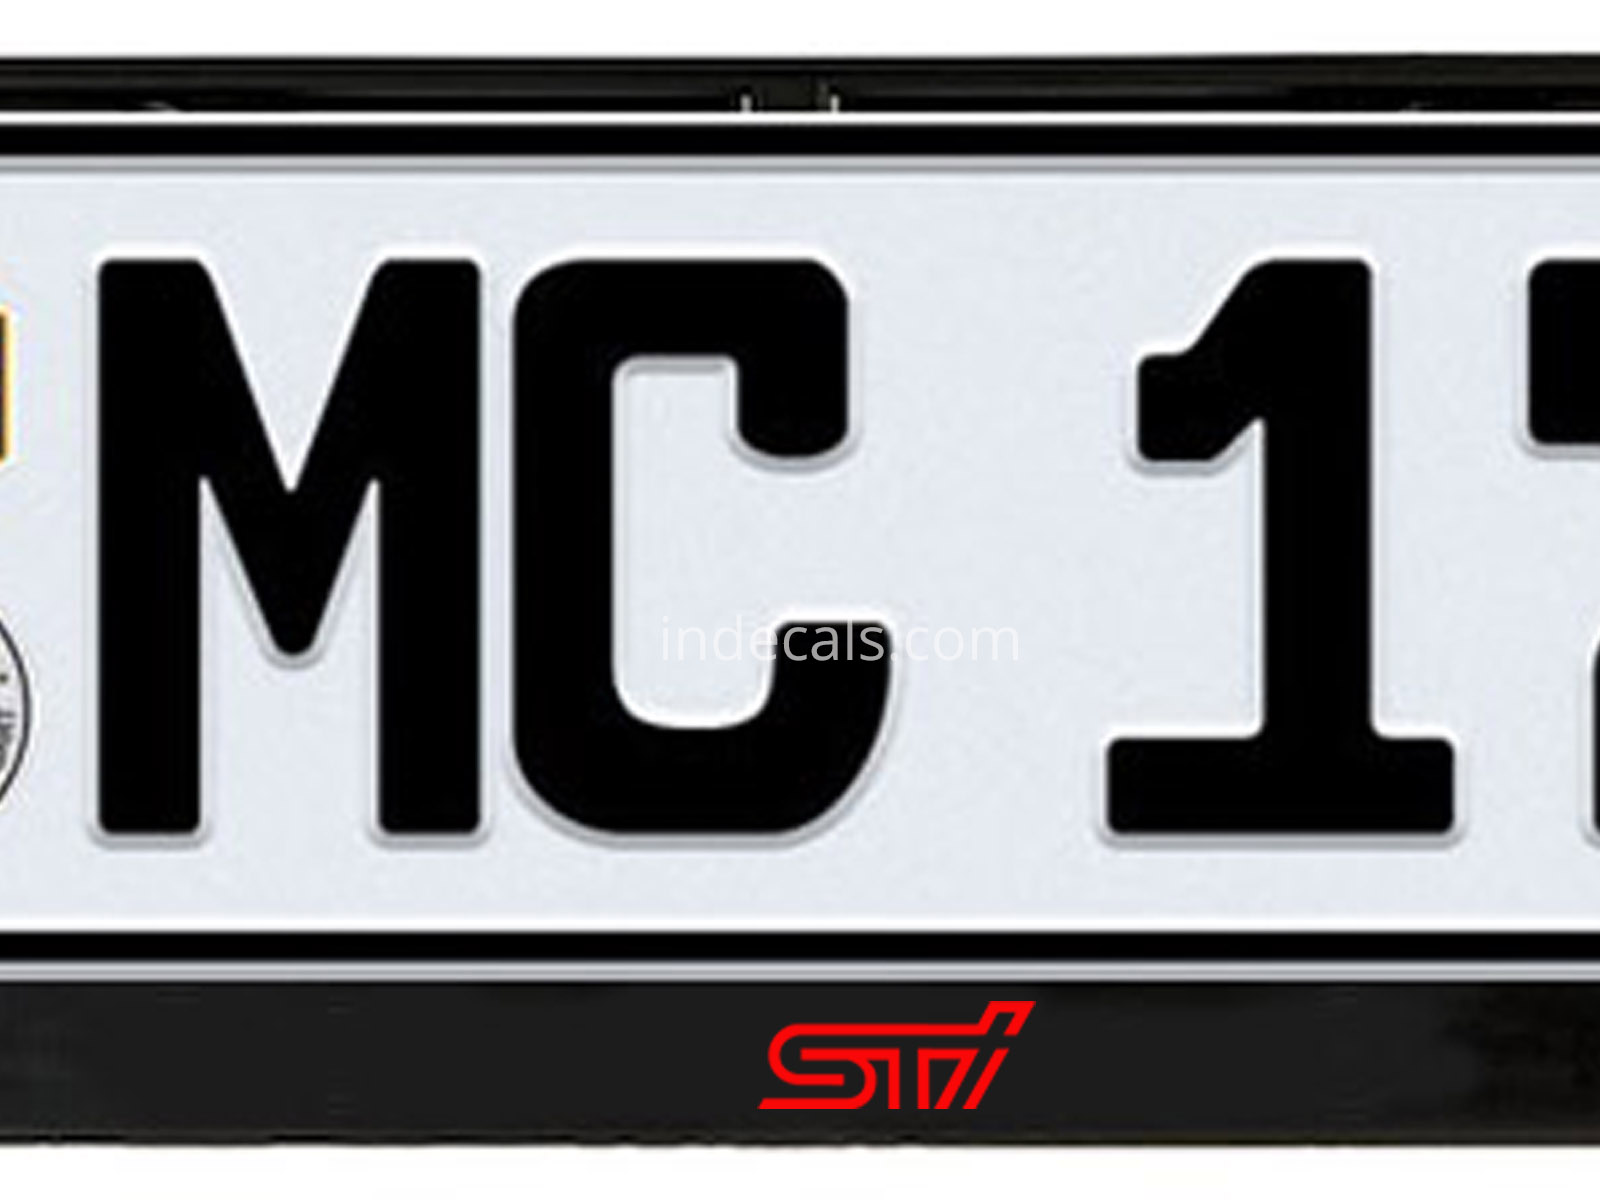 2 x Subaru STI stickers for License Plate Frame - Red